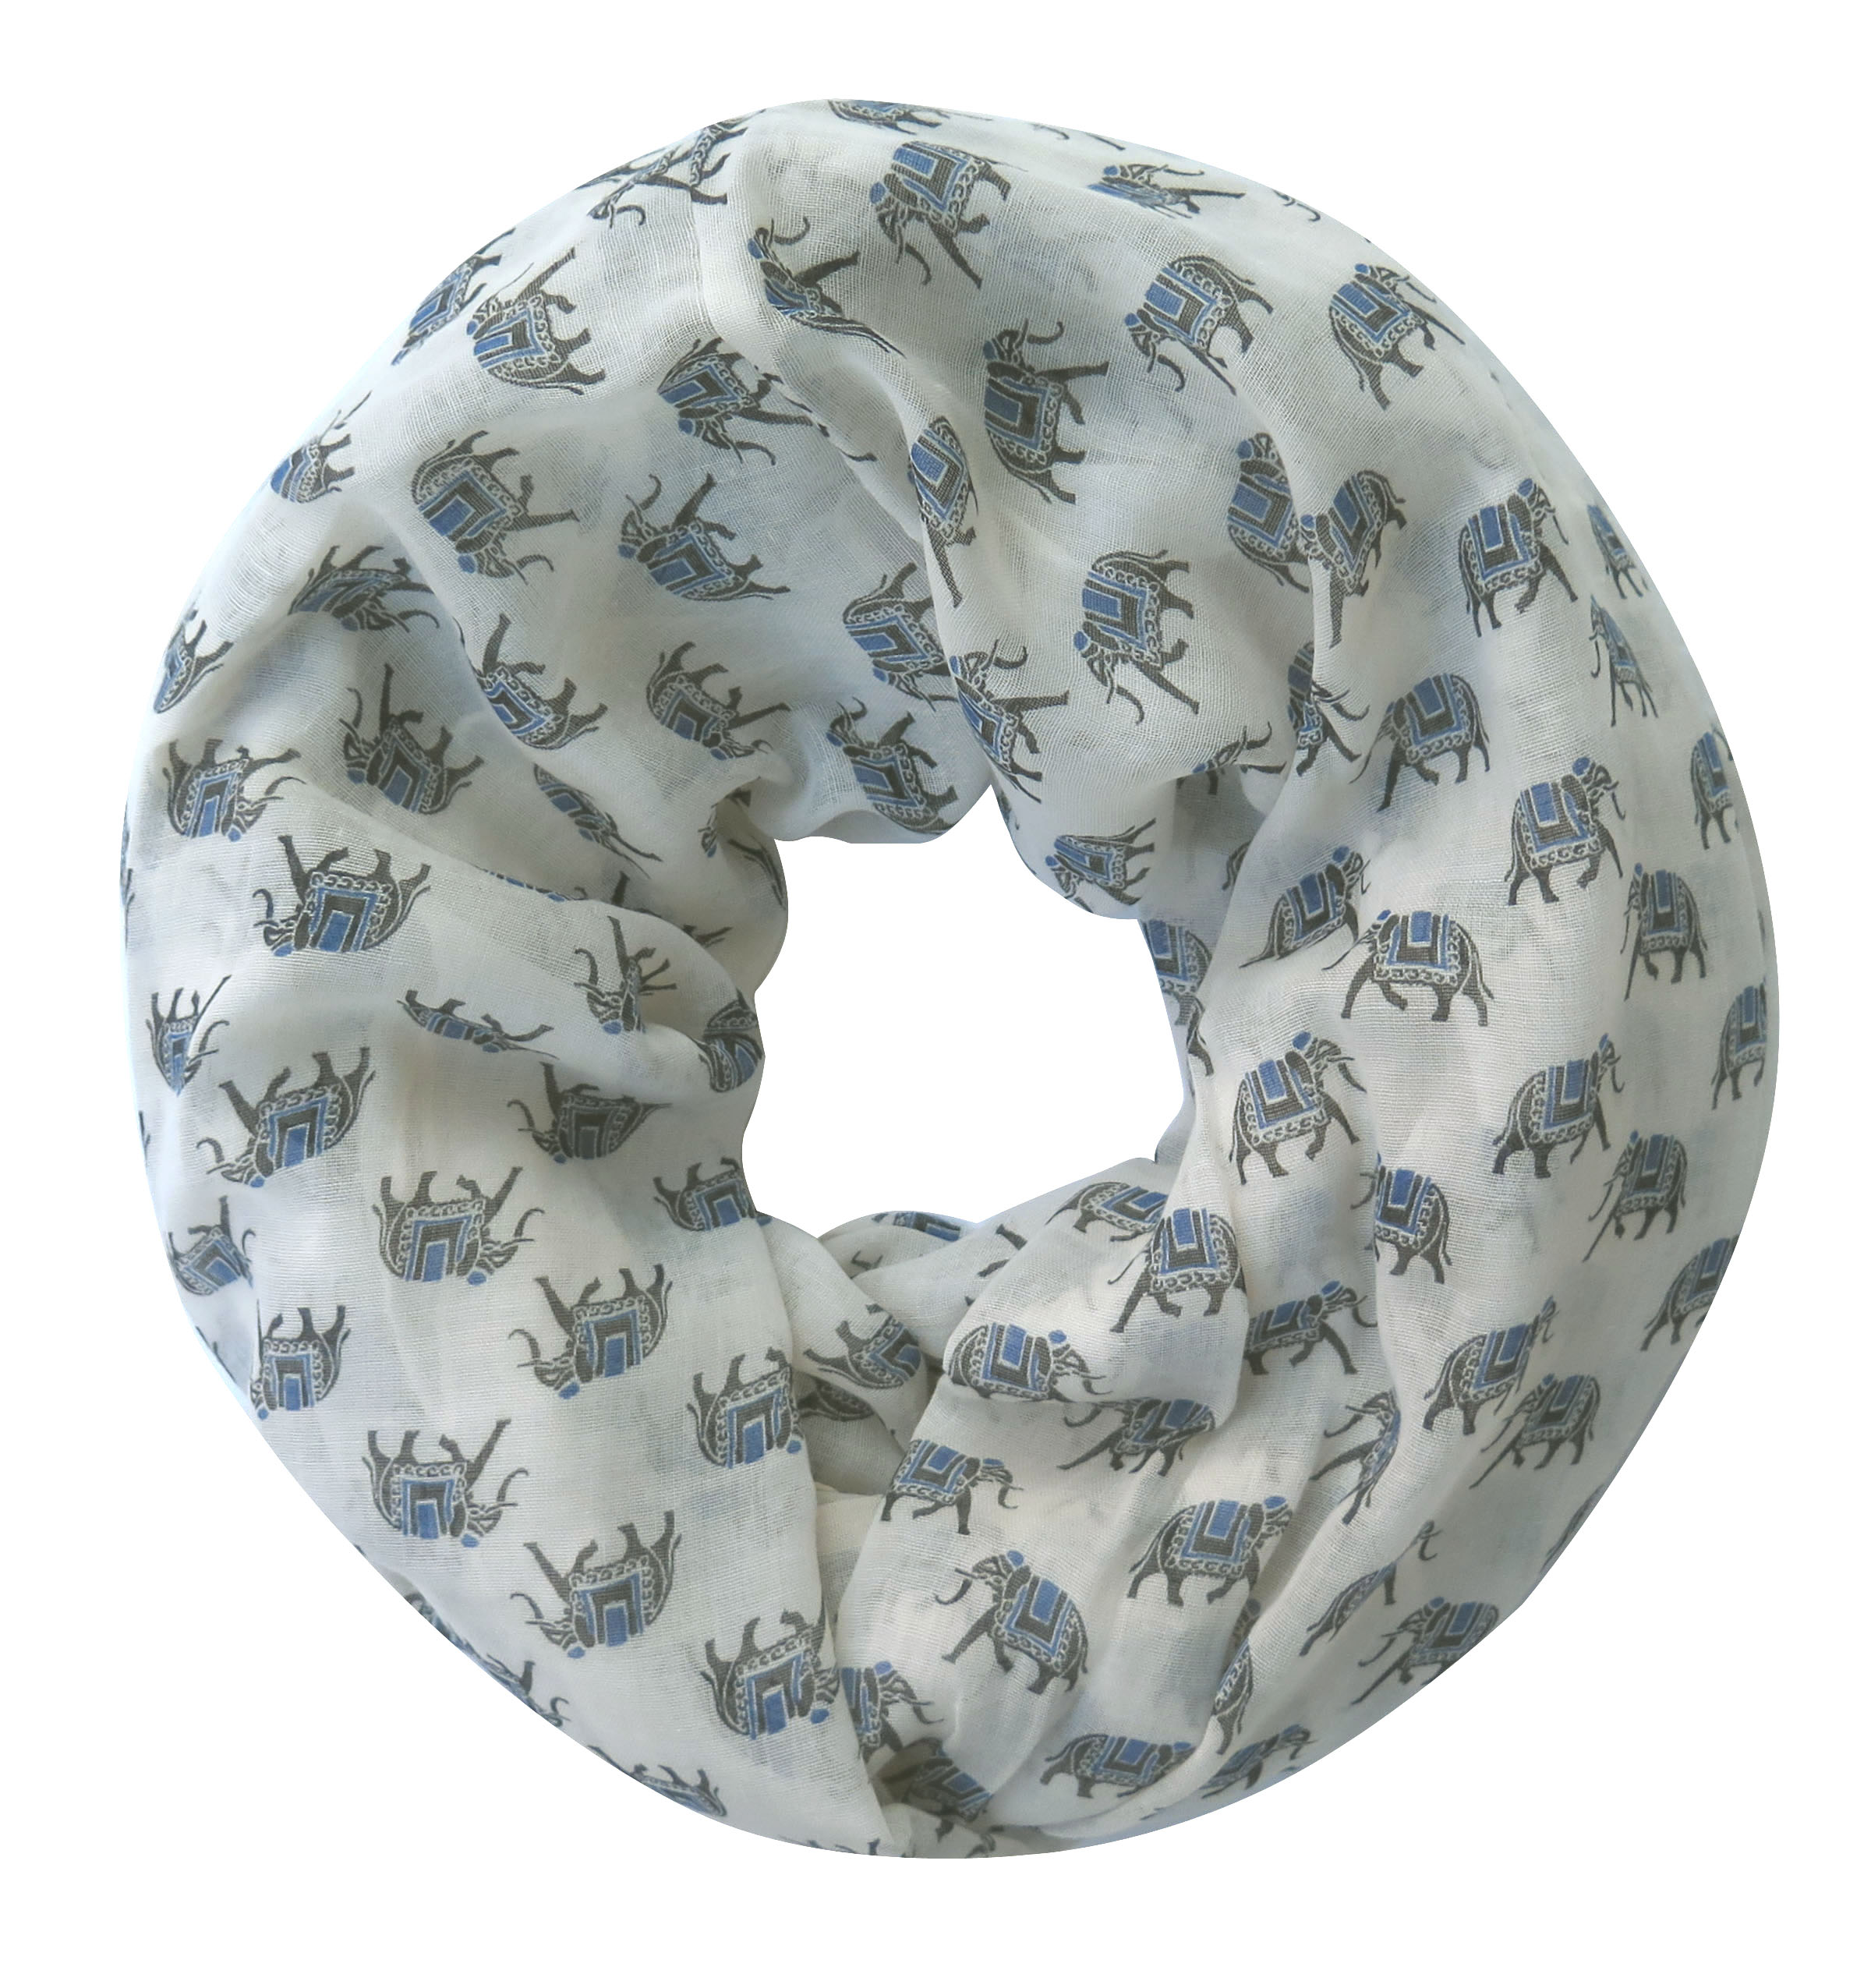 Small Elephant Animal Print Infinity Circle Loop Scarf Women's Accessories Gift Soft Lightweight, Free Shipping(China (Mainland))